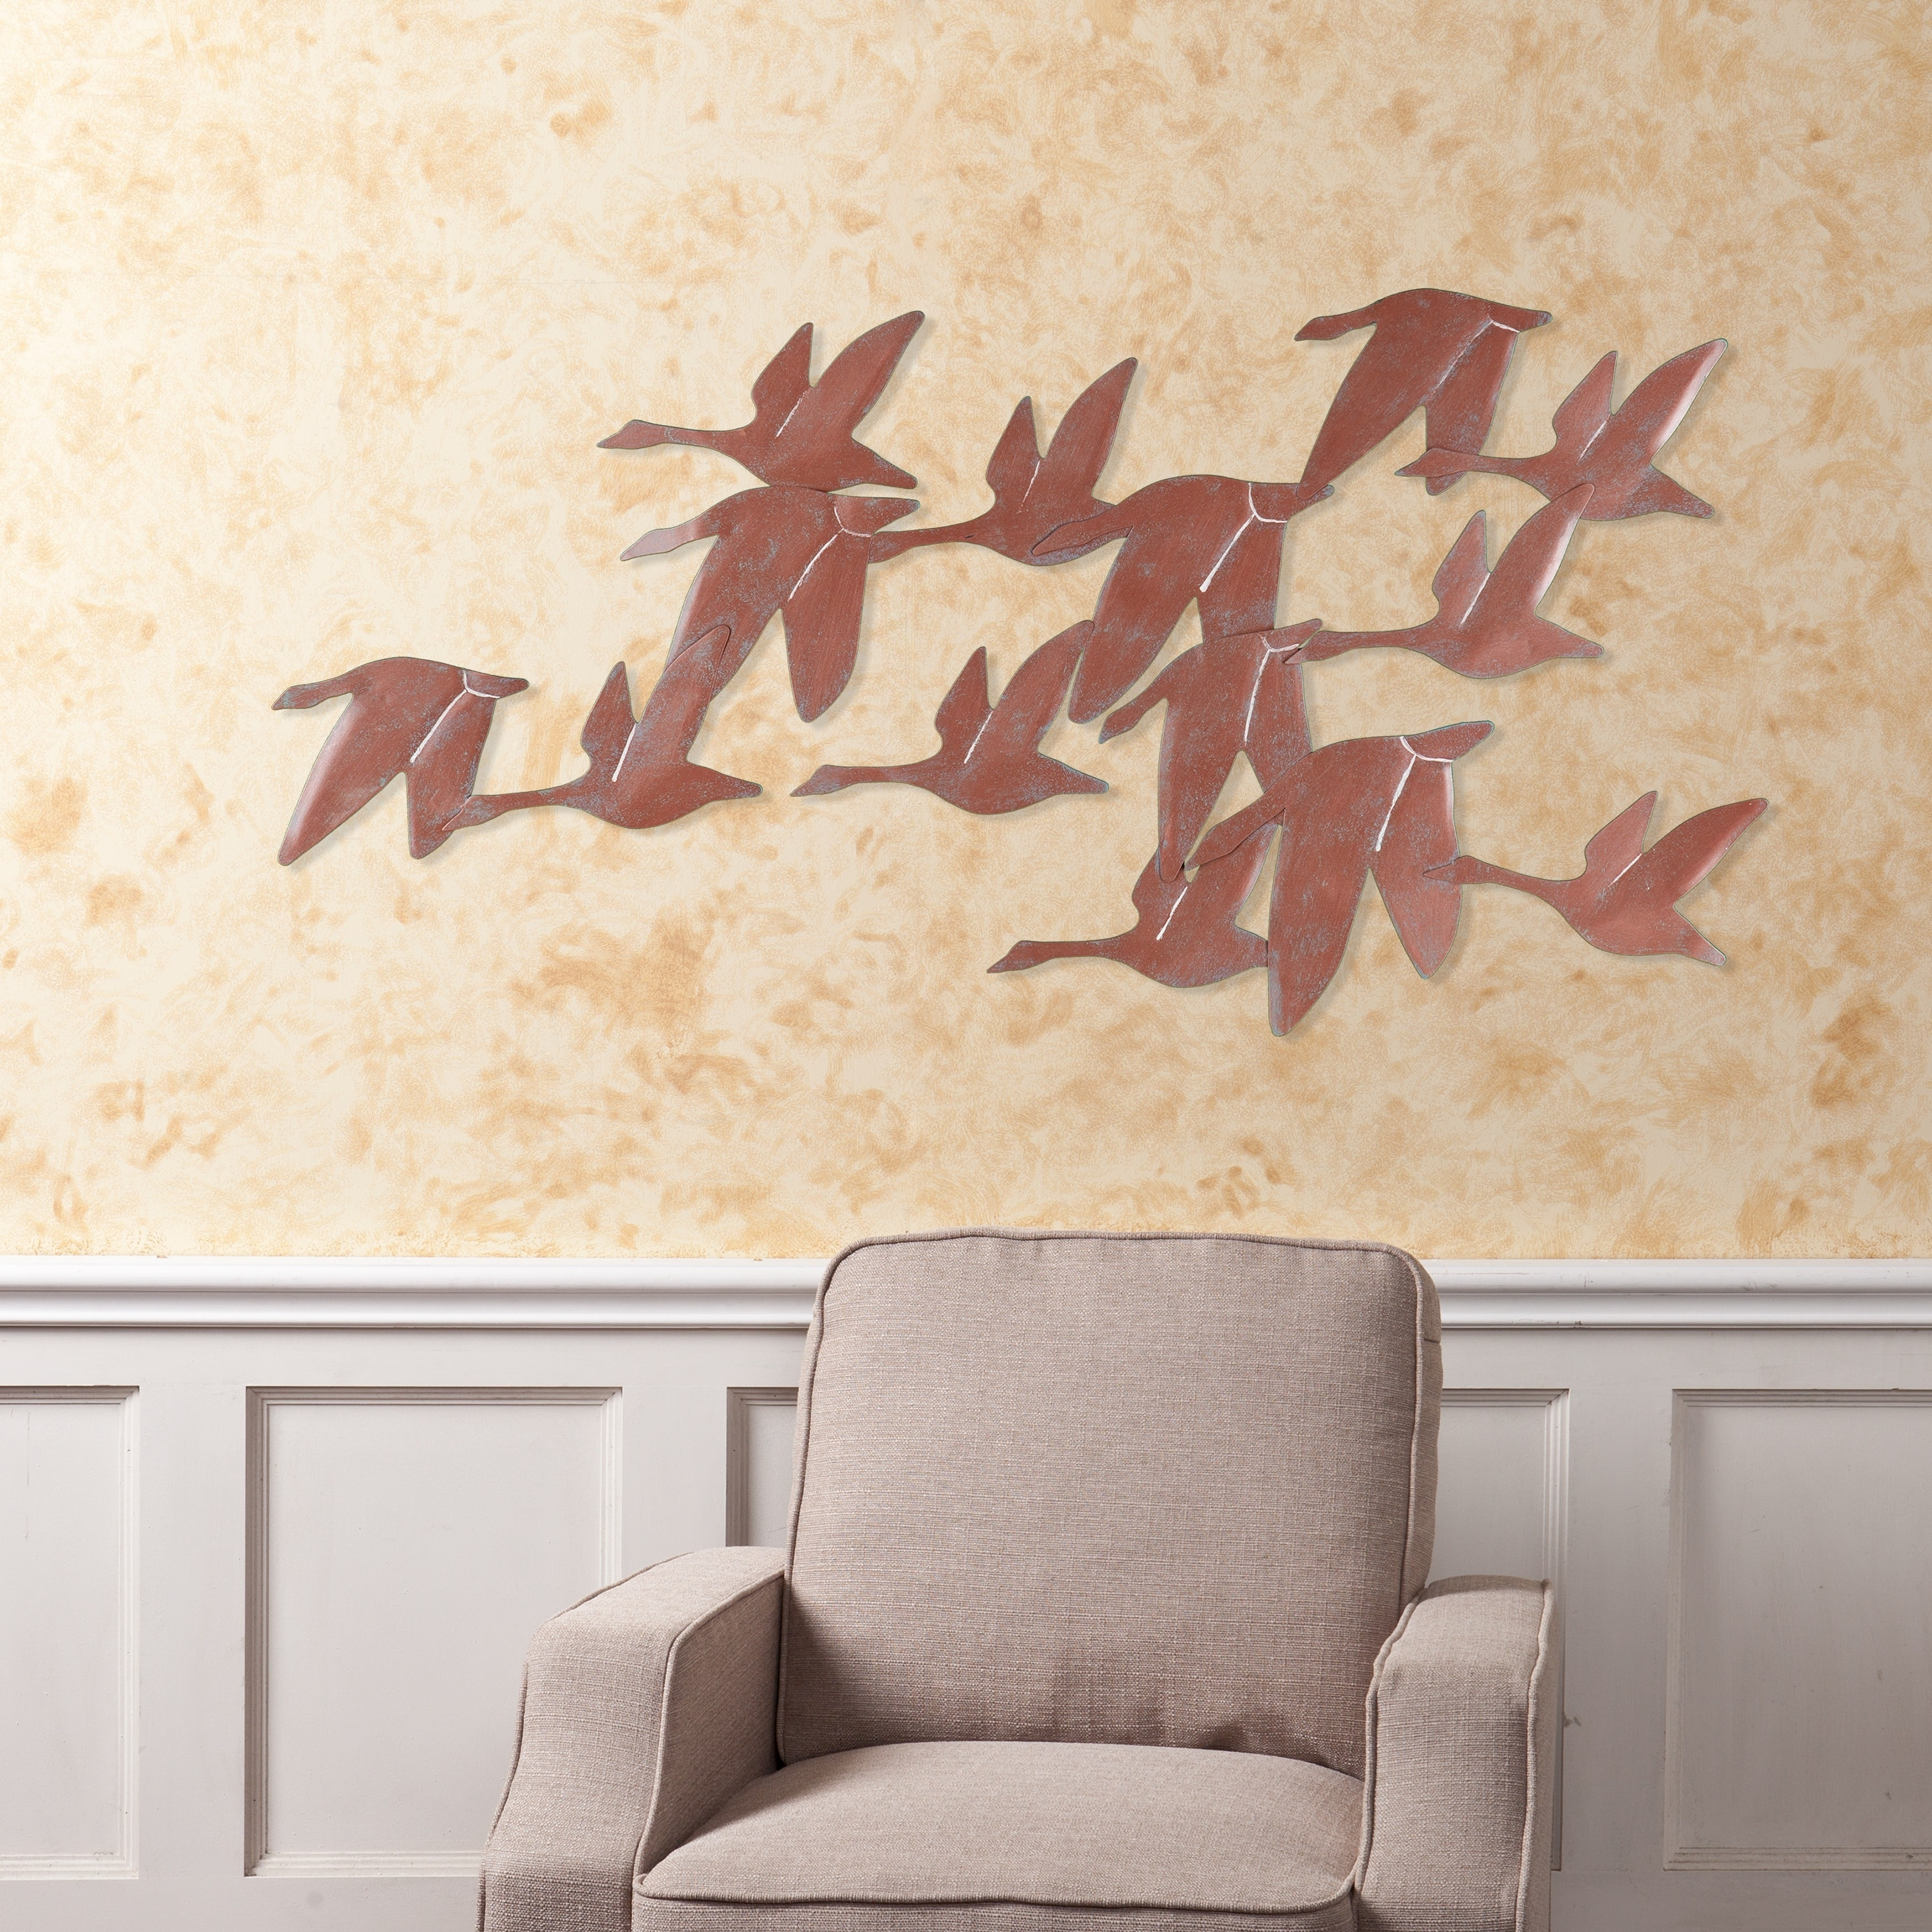 Shop Harper Blvd Flock Of Geese Wall Art - Free Shipping On Orders for Overstock Wall Art (Image 9 of 20)